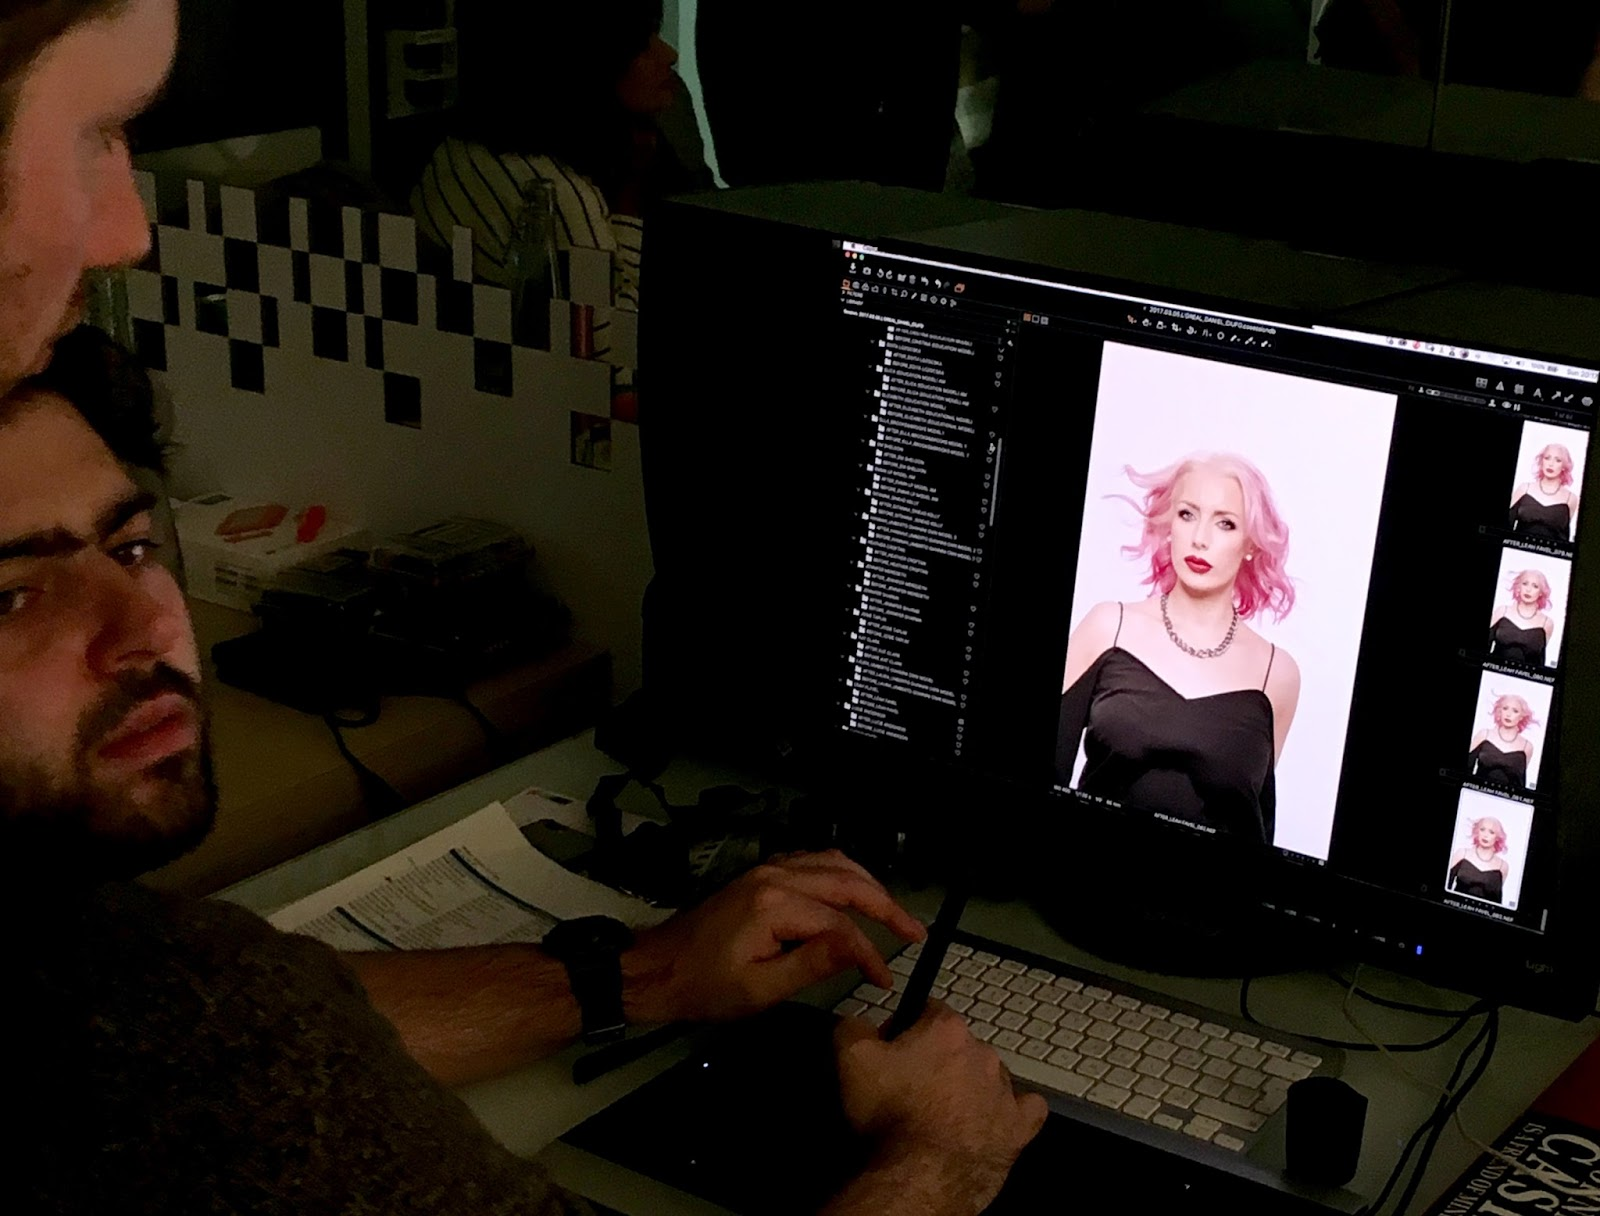 Checking out the shots, L'Oreal Pro UK Modelling, Pink Hair, Colourful Hair